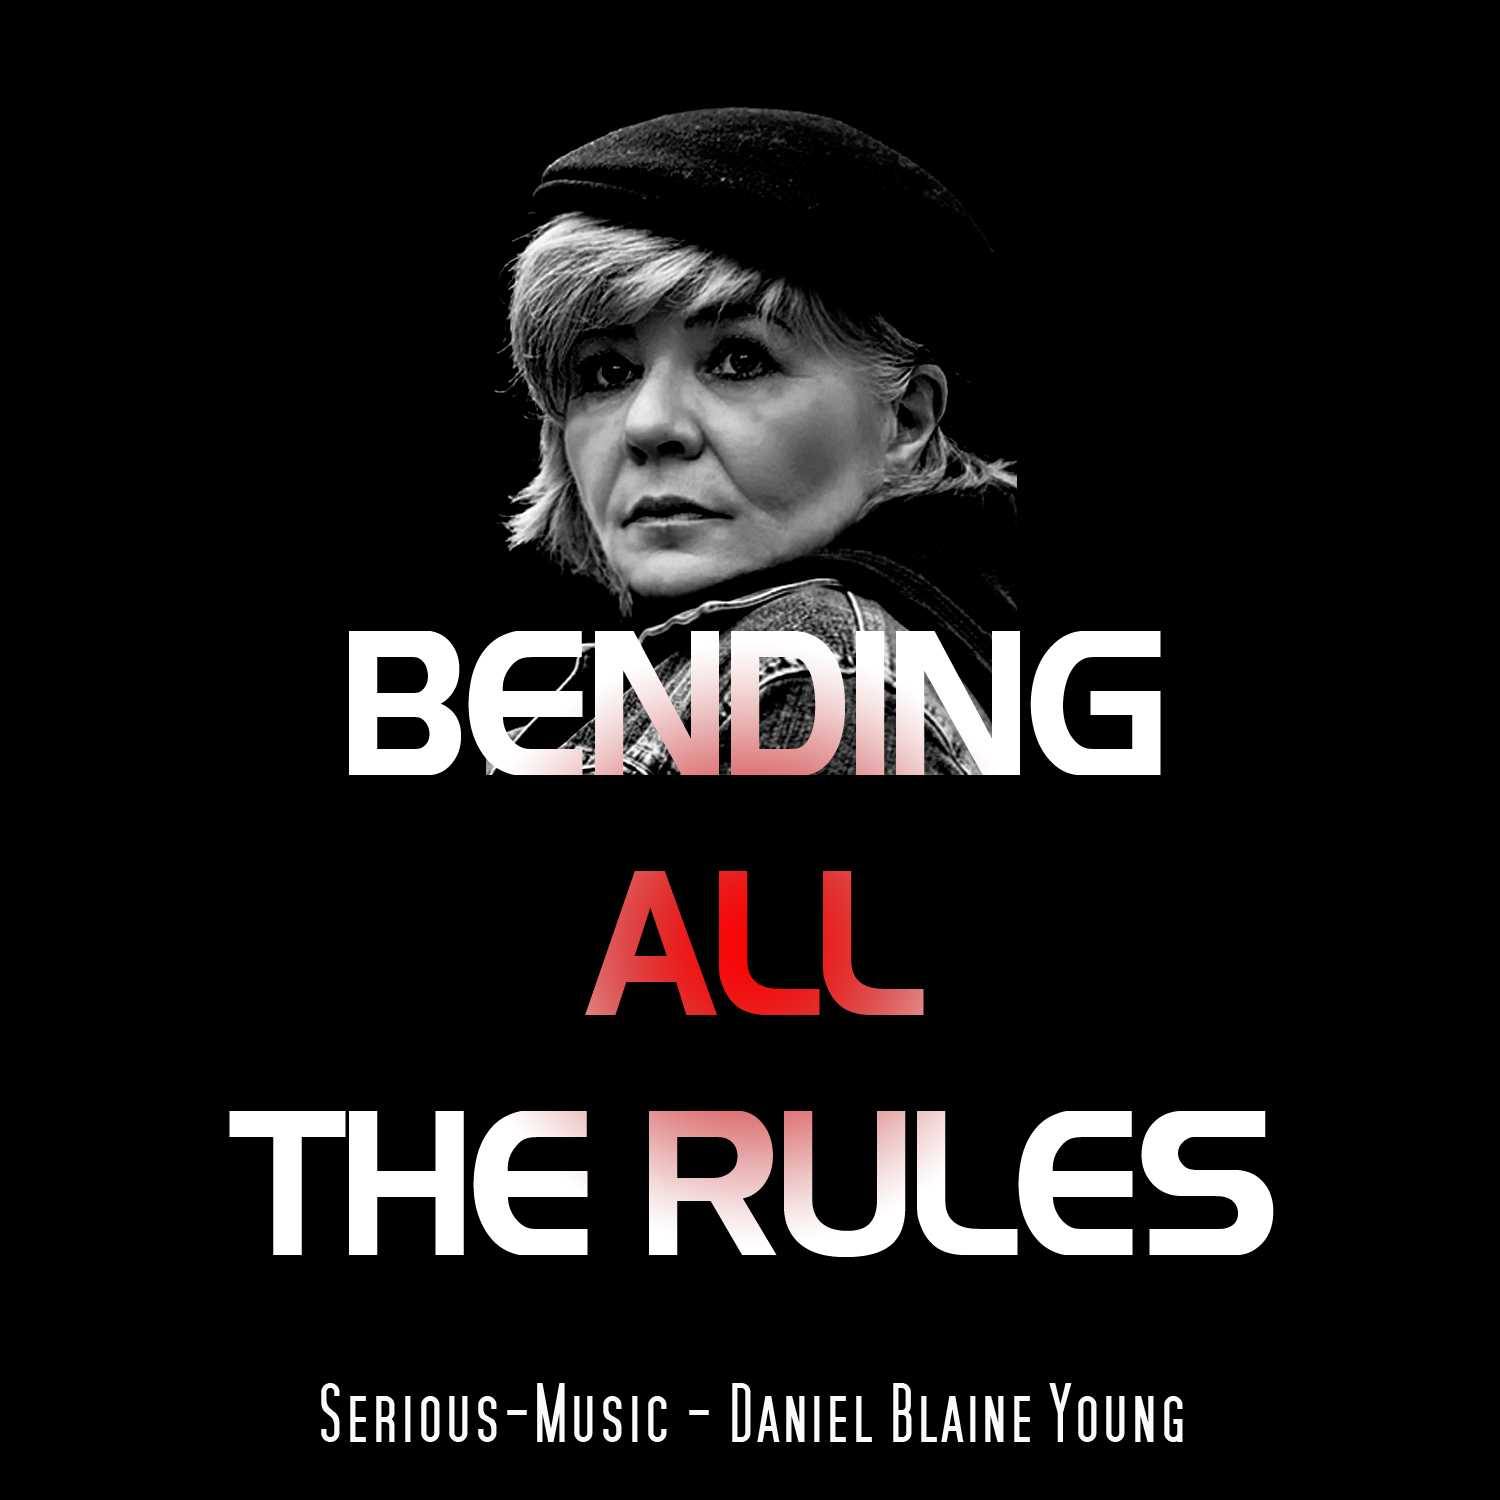 Bending All The Rules feat. Danlb Young - Album CHASING AFTER DREAMS